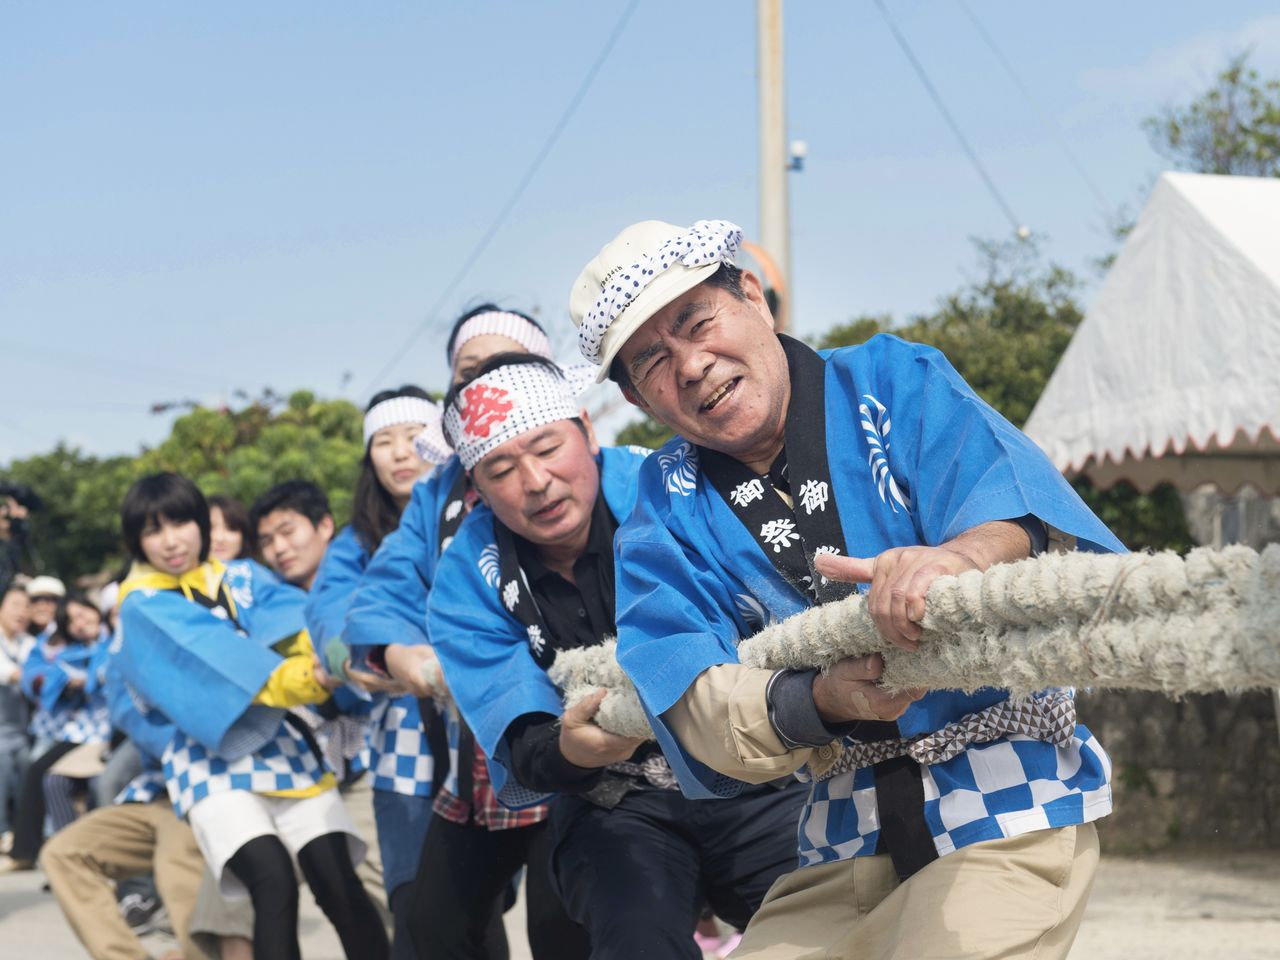 Participants put their backs into the north-south tug of war.